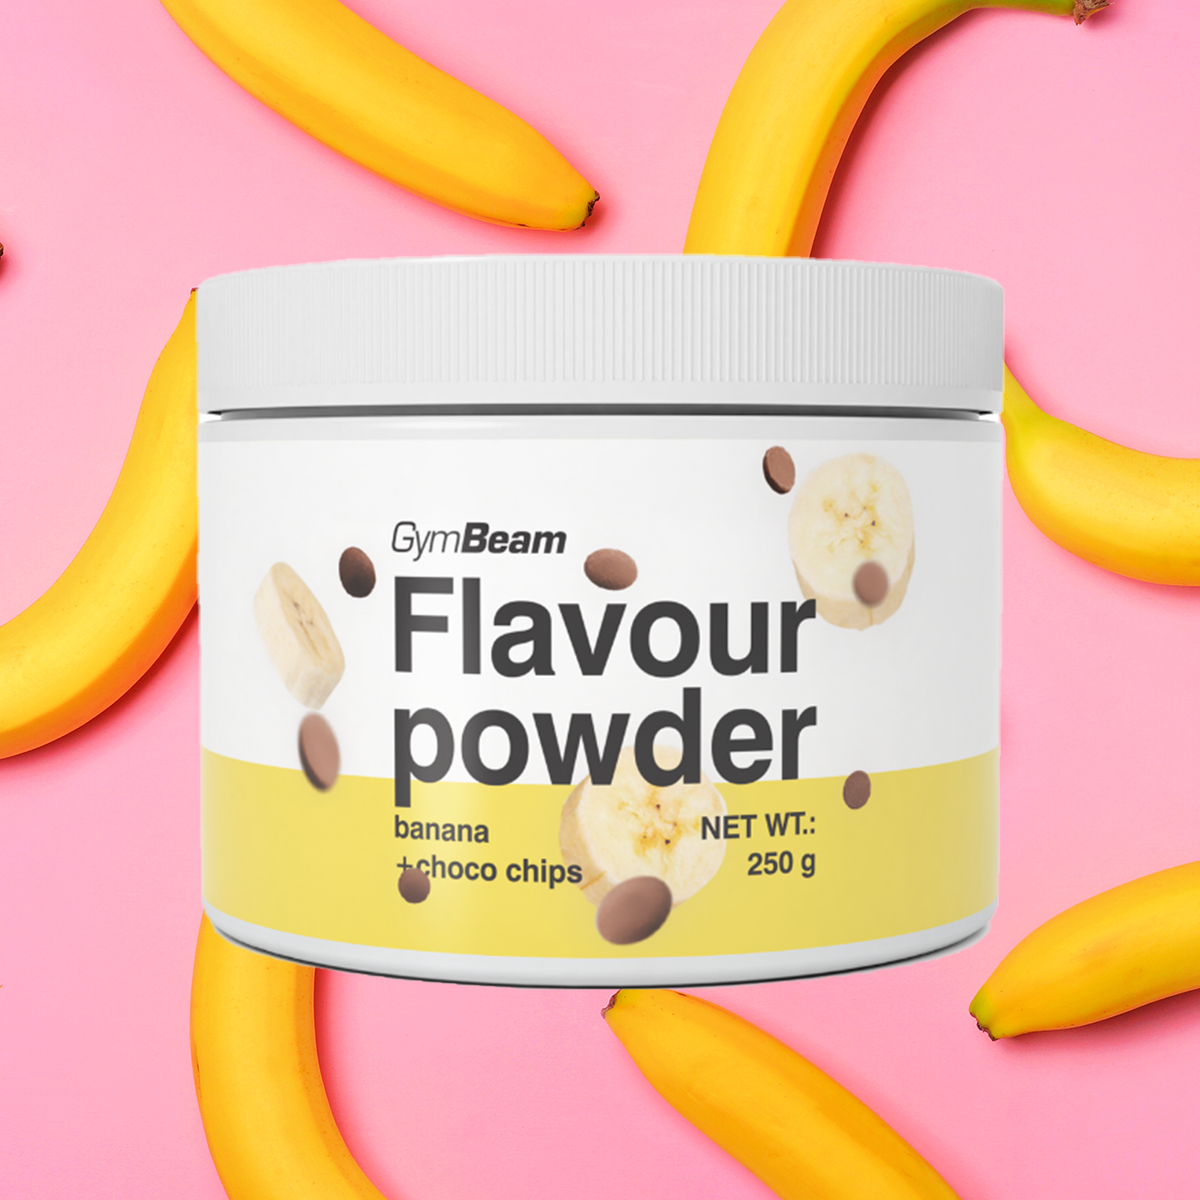 Flavour powder 250 g cookies & cream with choco chips - GymBeam